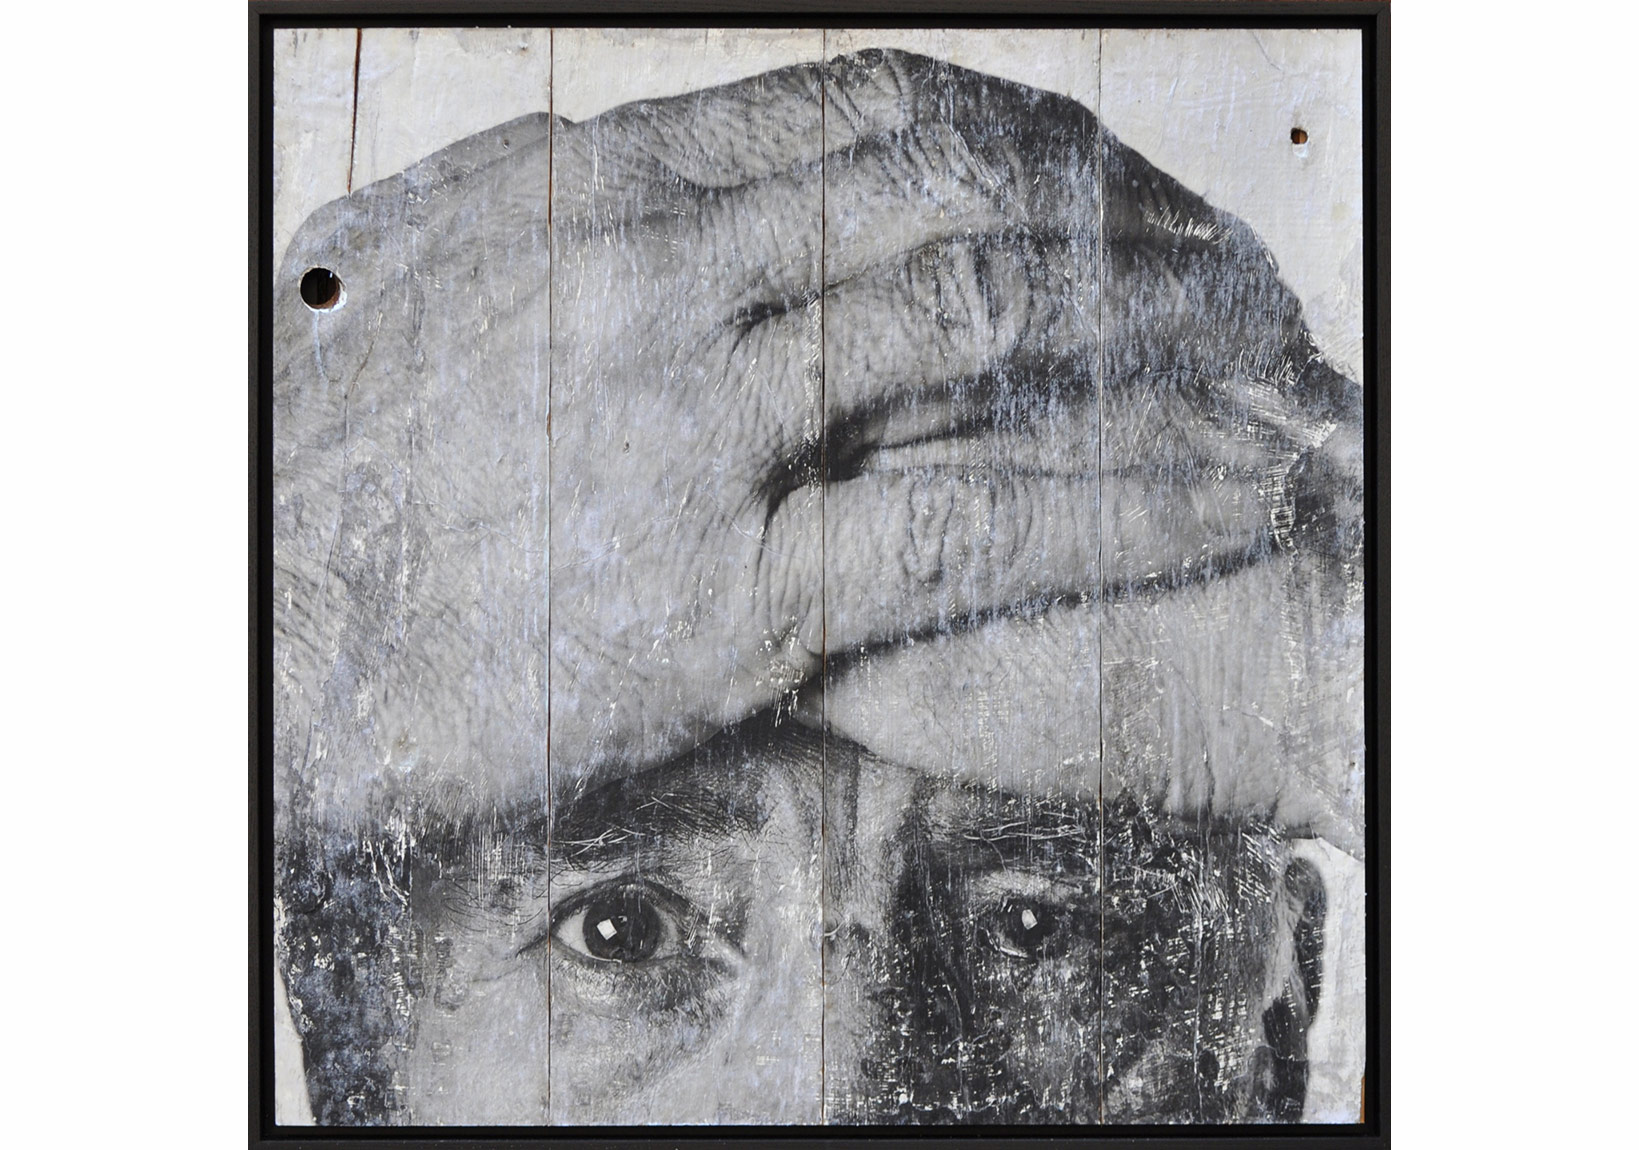 JR, Wrinkles of the City, Istanbul on Wooden Panels, 99x99 cm, Triptych, 2014